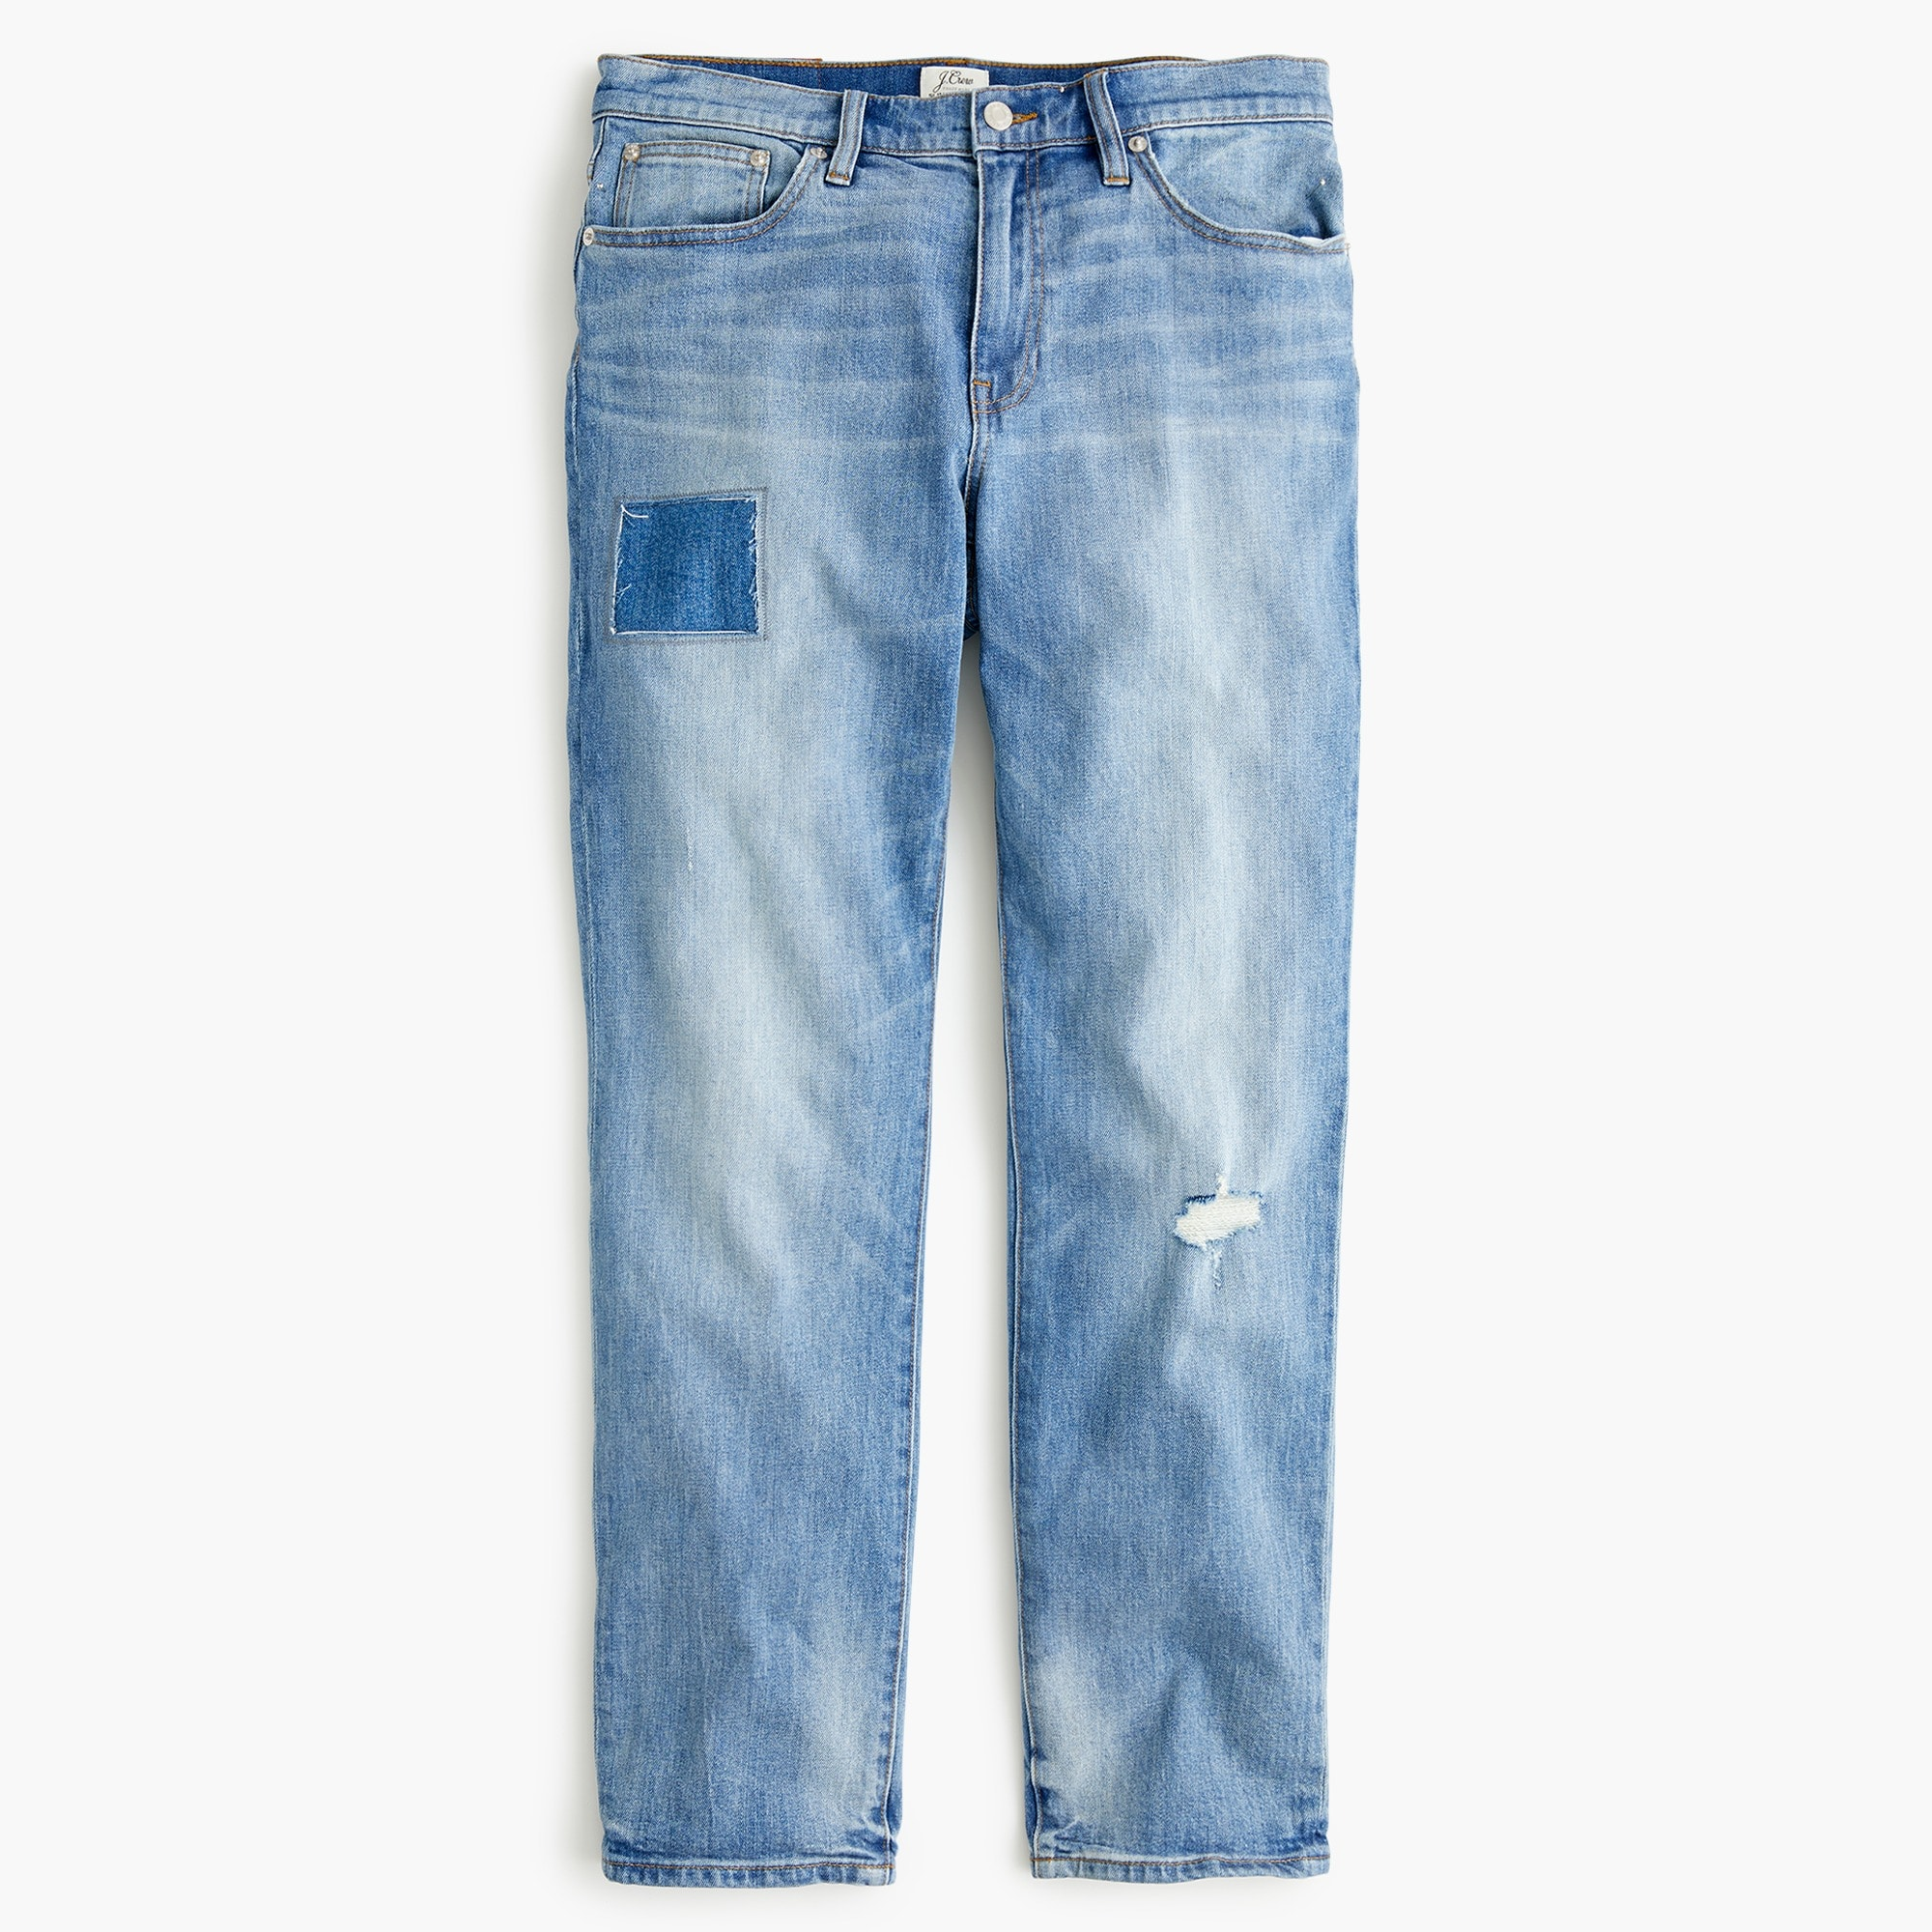 Image 1 for Petite Slim boyfriend jean with patch and distressing